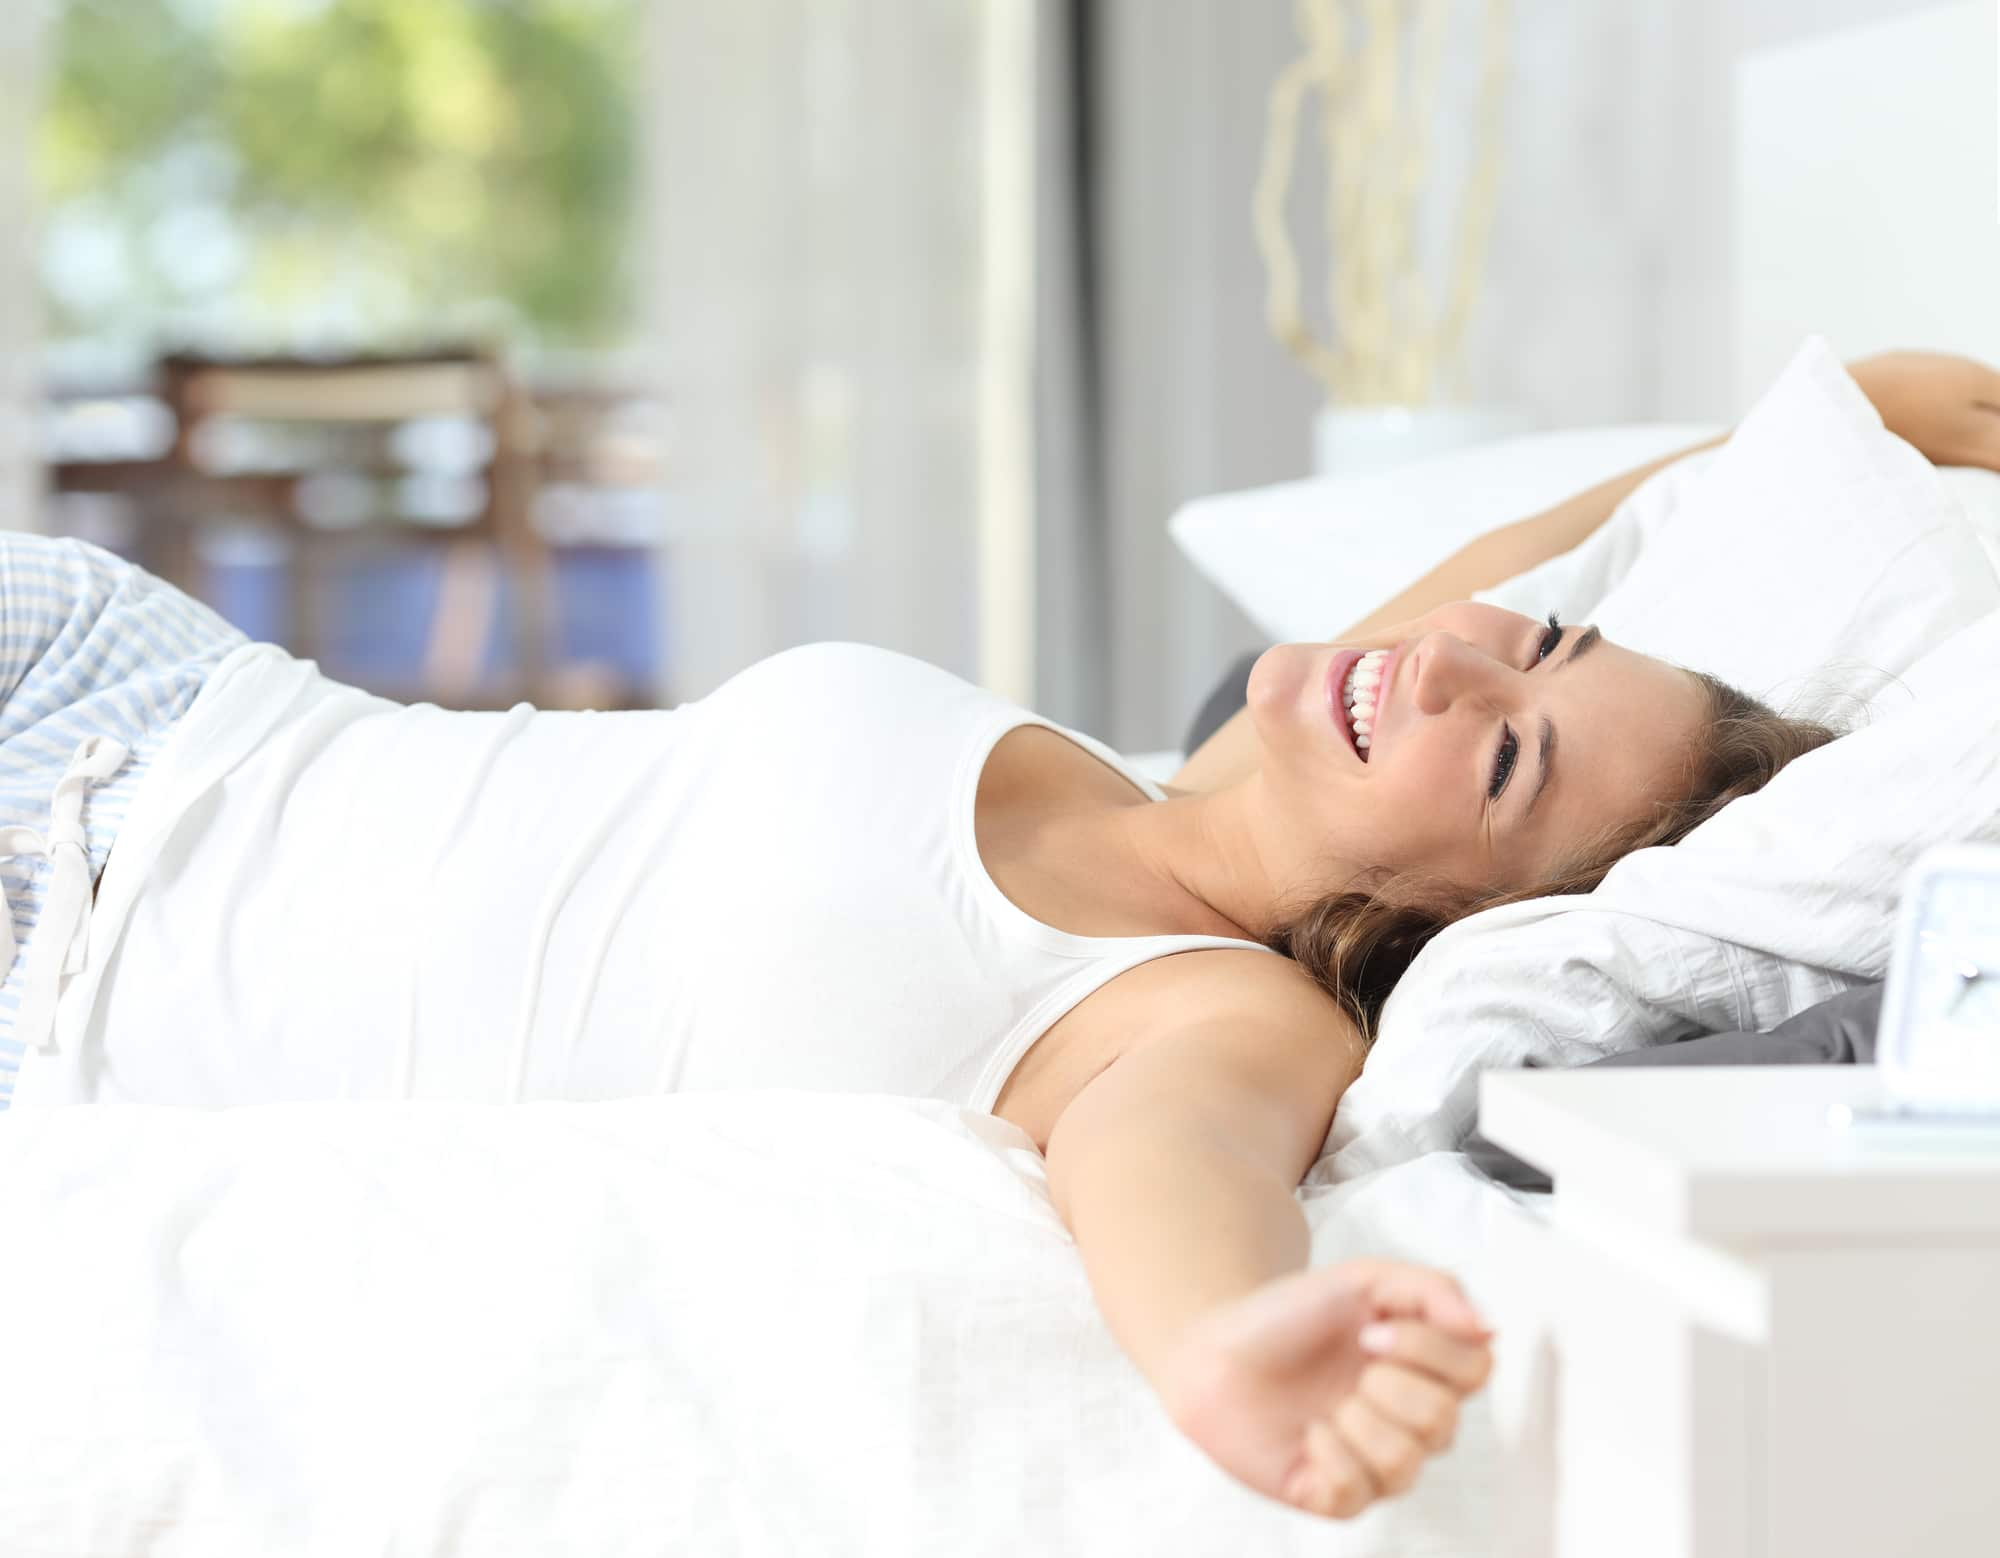 a woman waking up with a smile